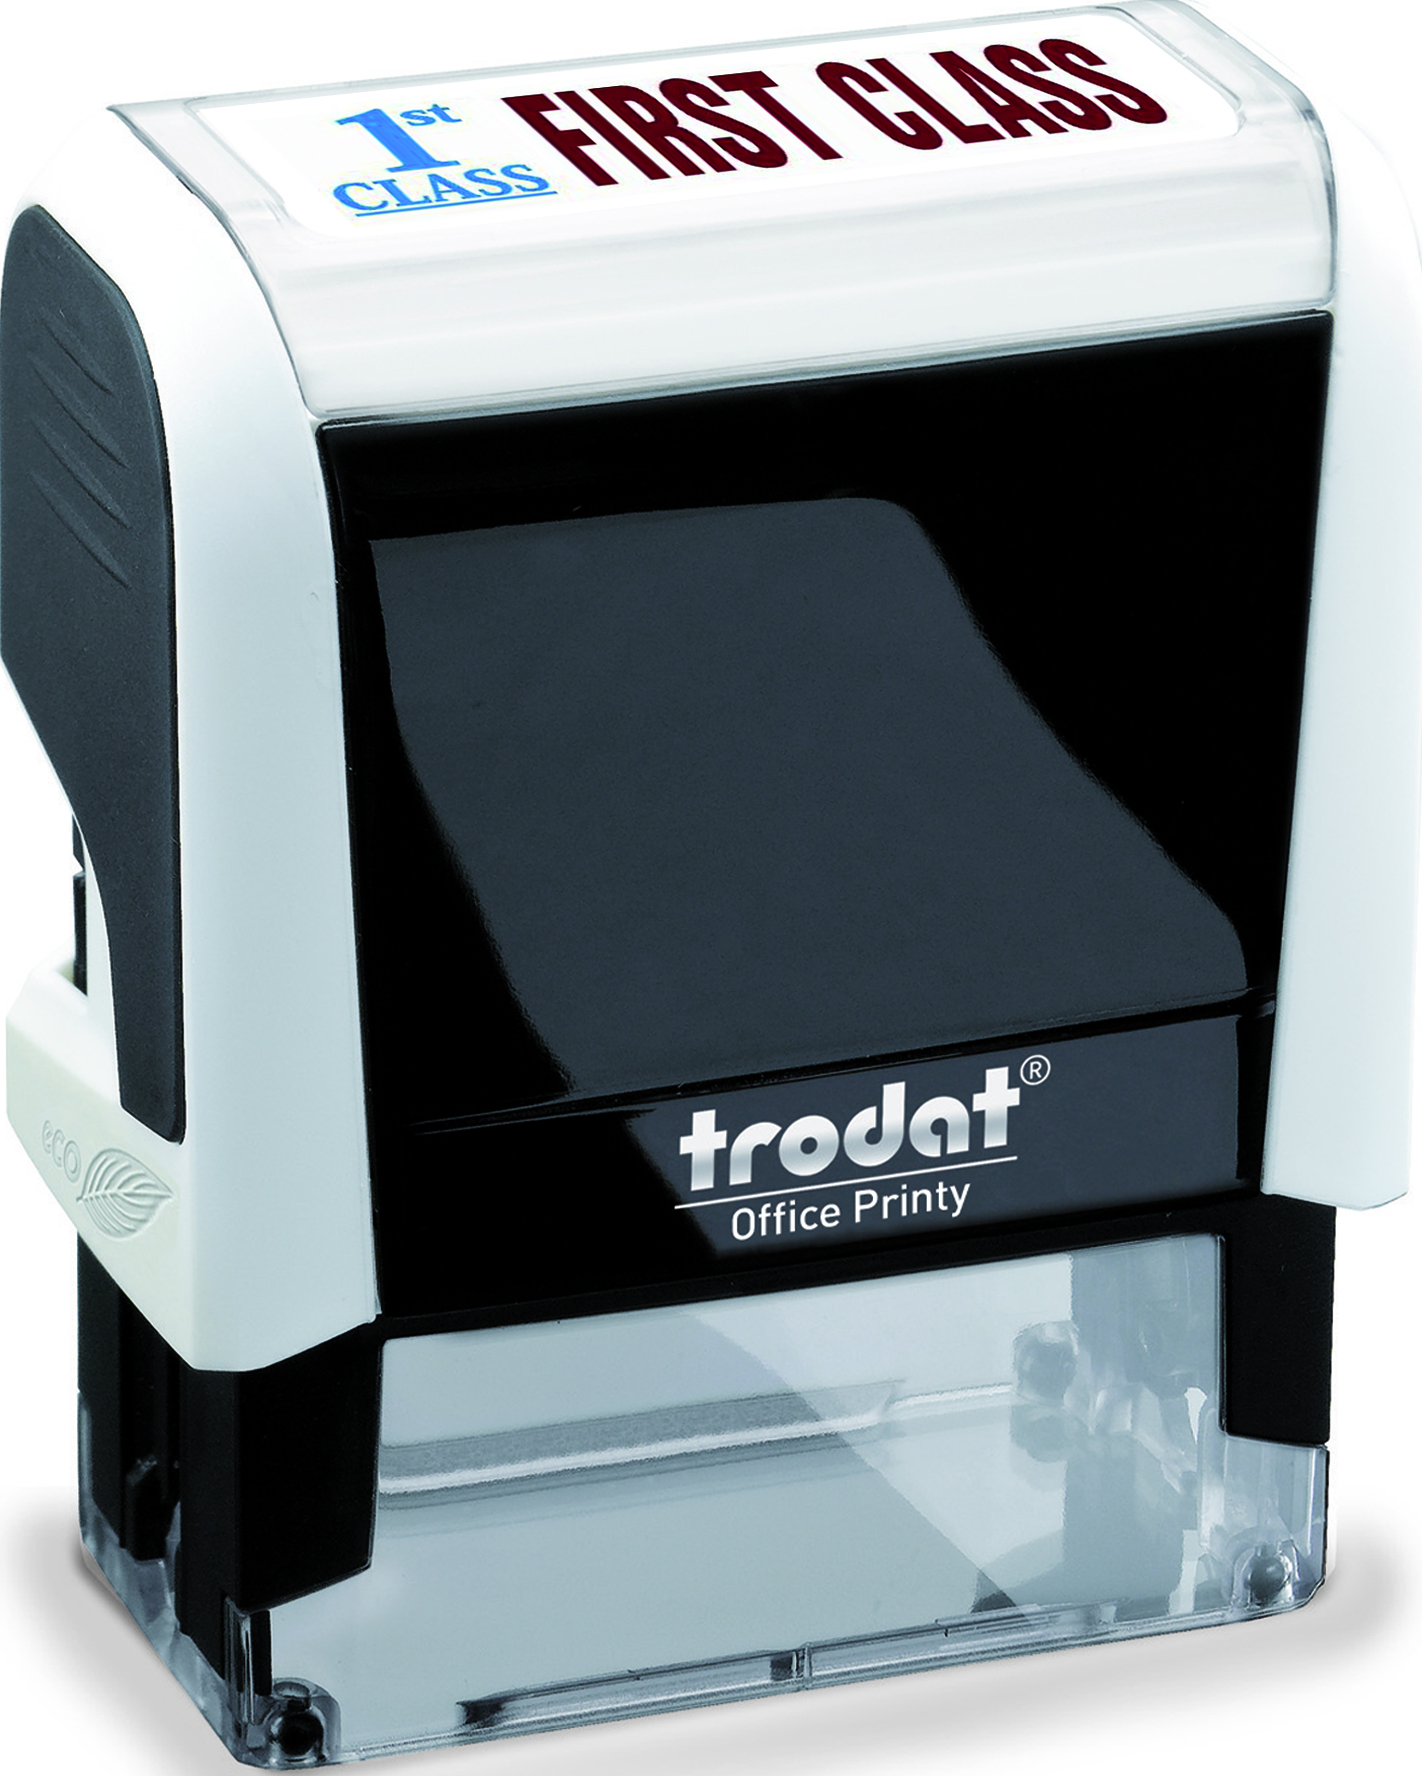 Trodat Office Printy 4912 White FIRST CLASS